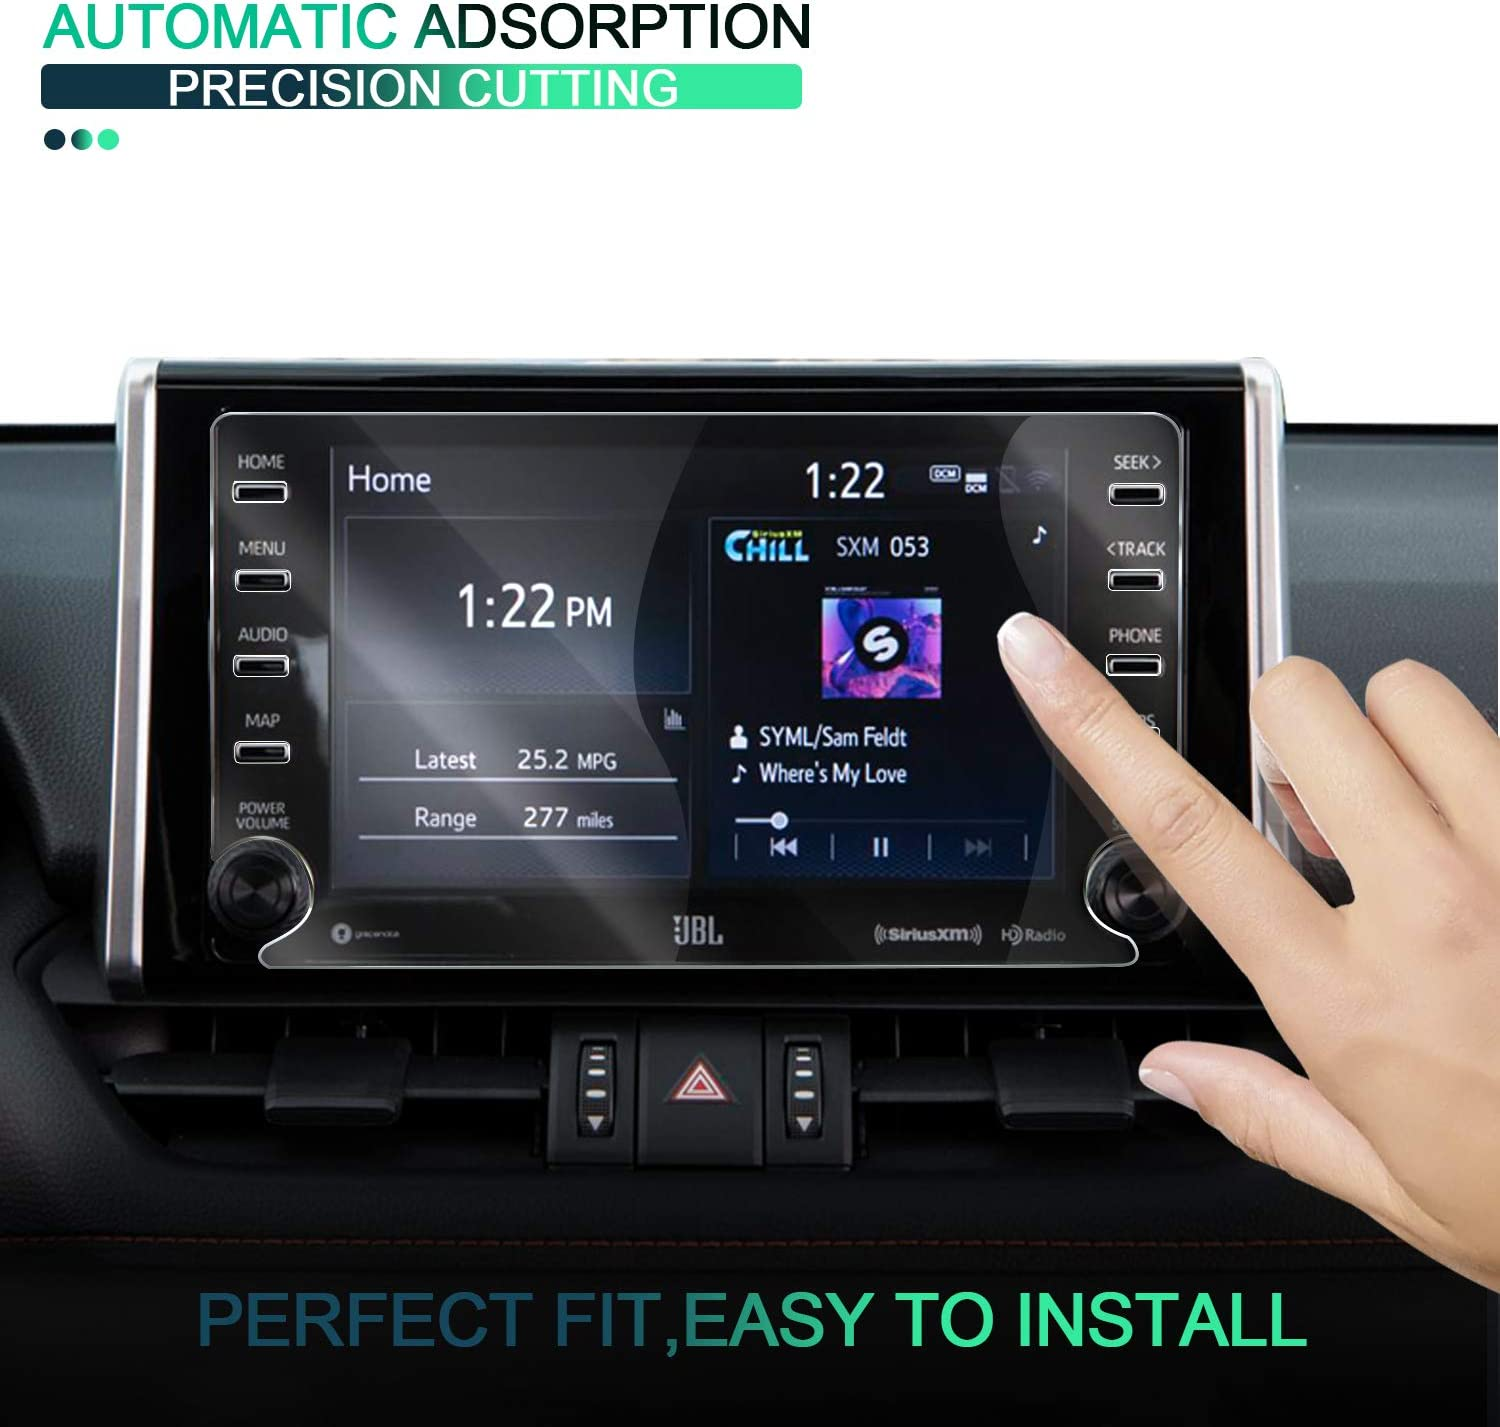 Toyota RAV4 Accessories Screen Protector Cover Compatible for Toyota RAV4,9H Anti-Blue Light Anti Glare for 2019 2020 RAV4 Screen Protector 7-Inch